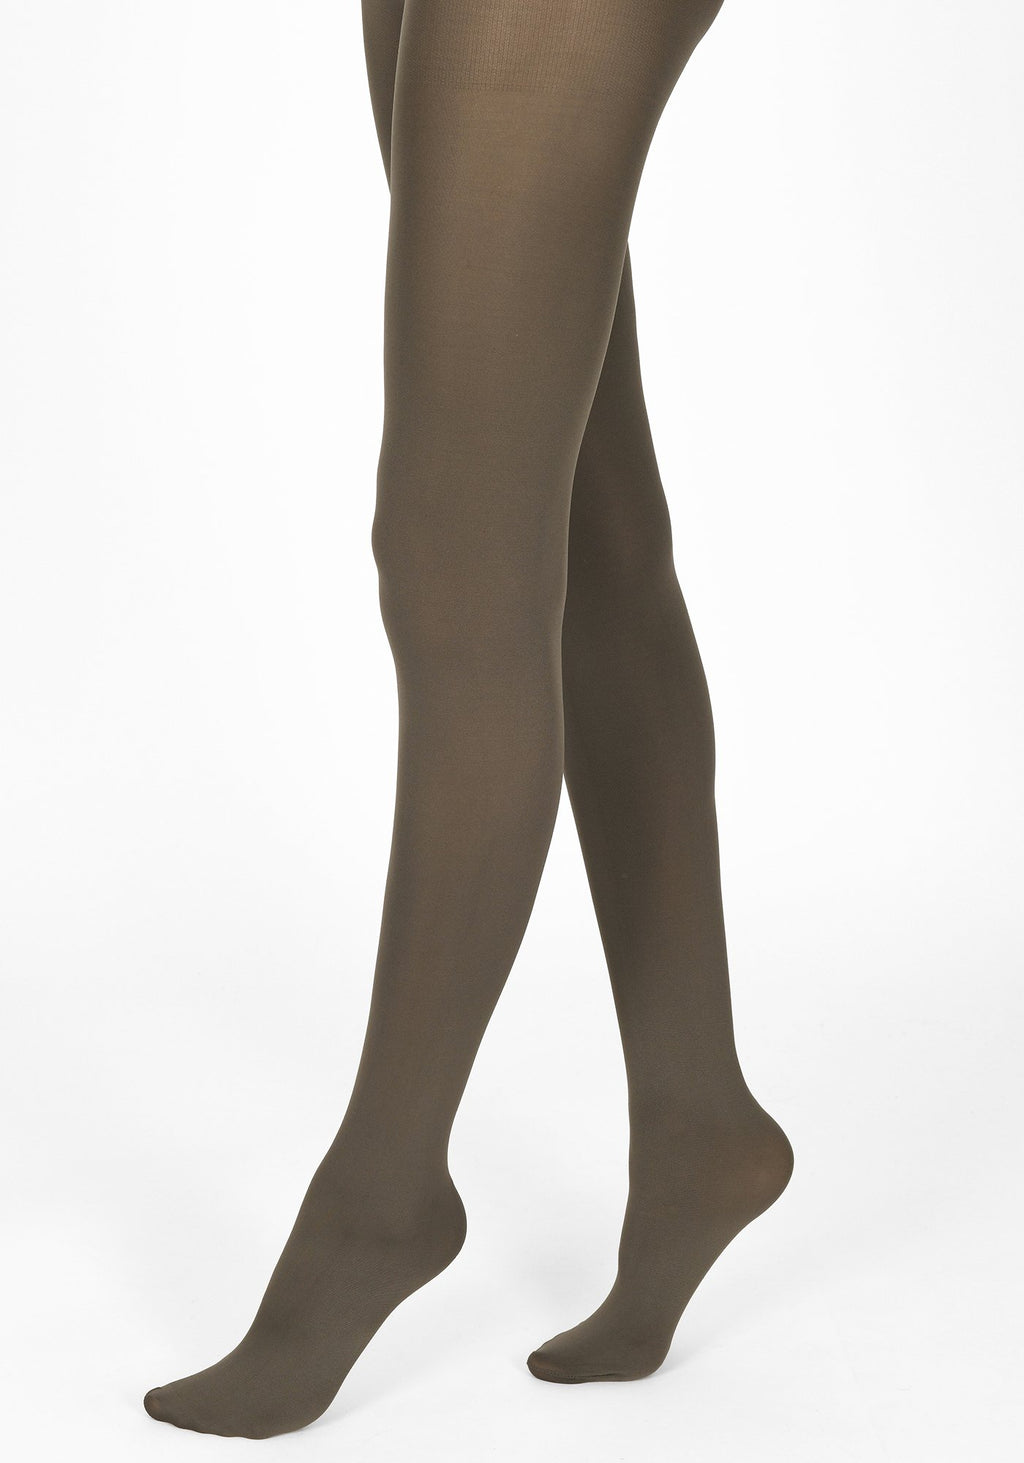 storm grey tights 100 denier 1